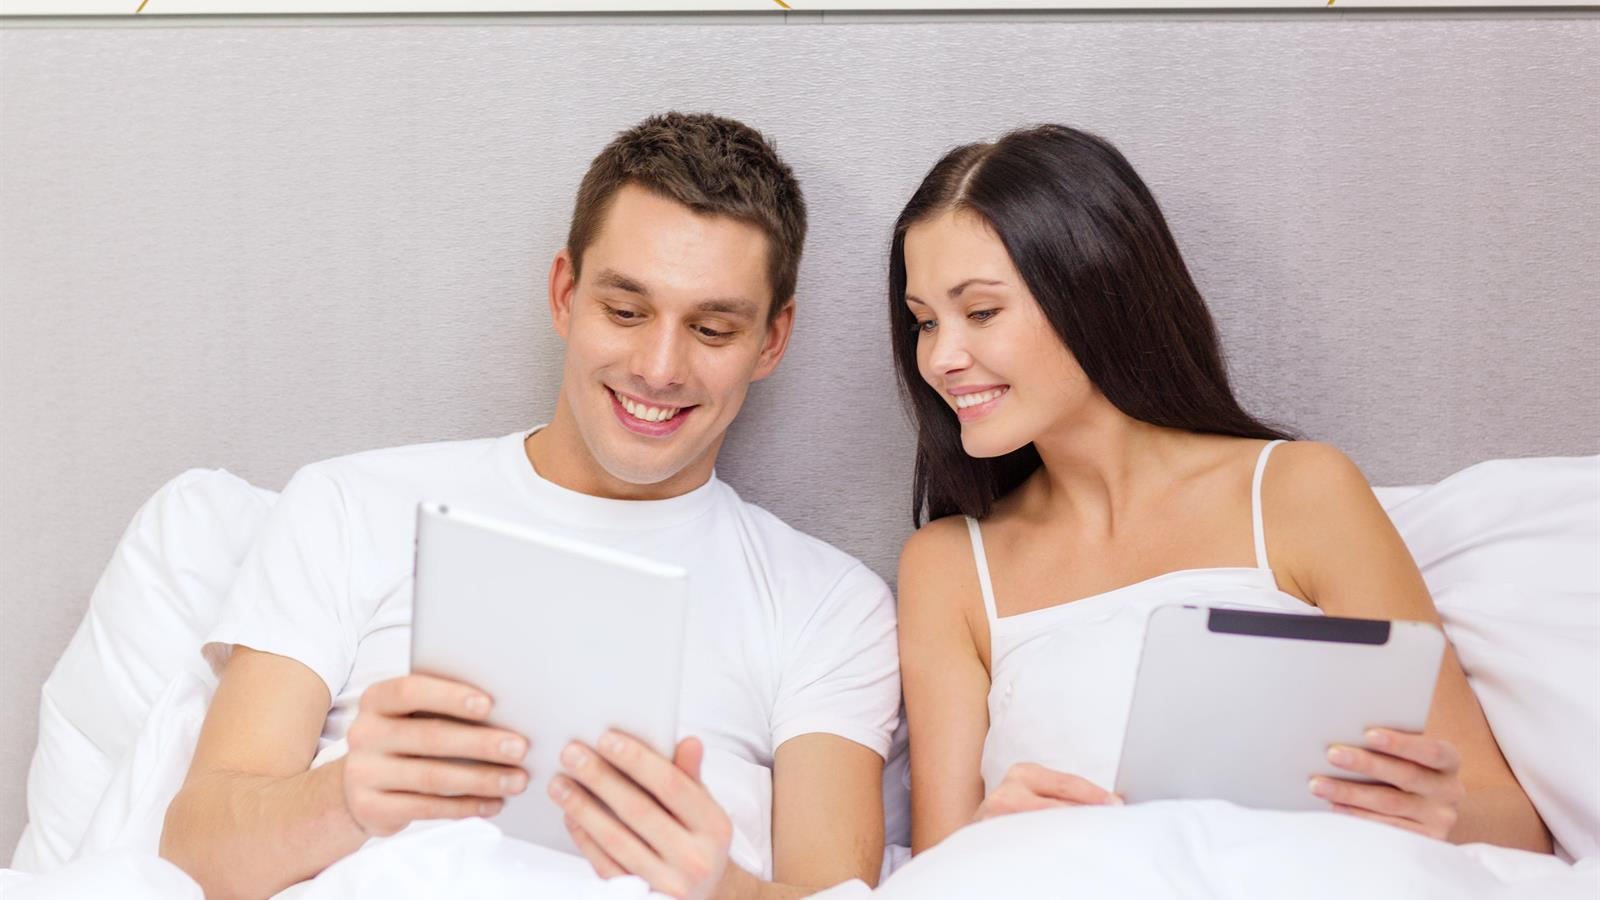 free dating wellington matchmaking without name